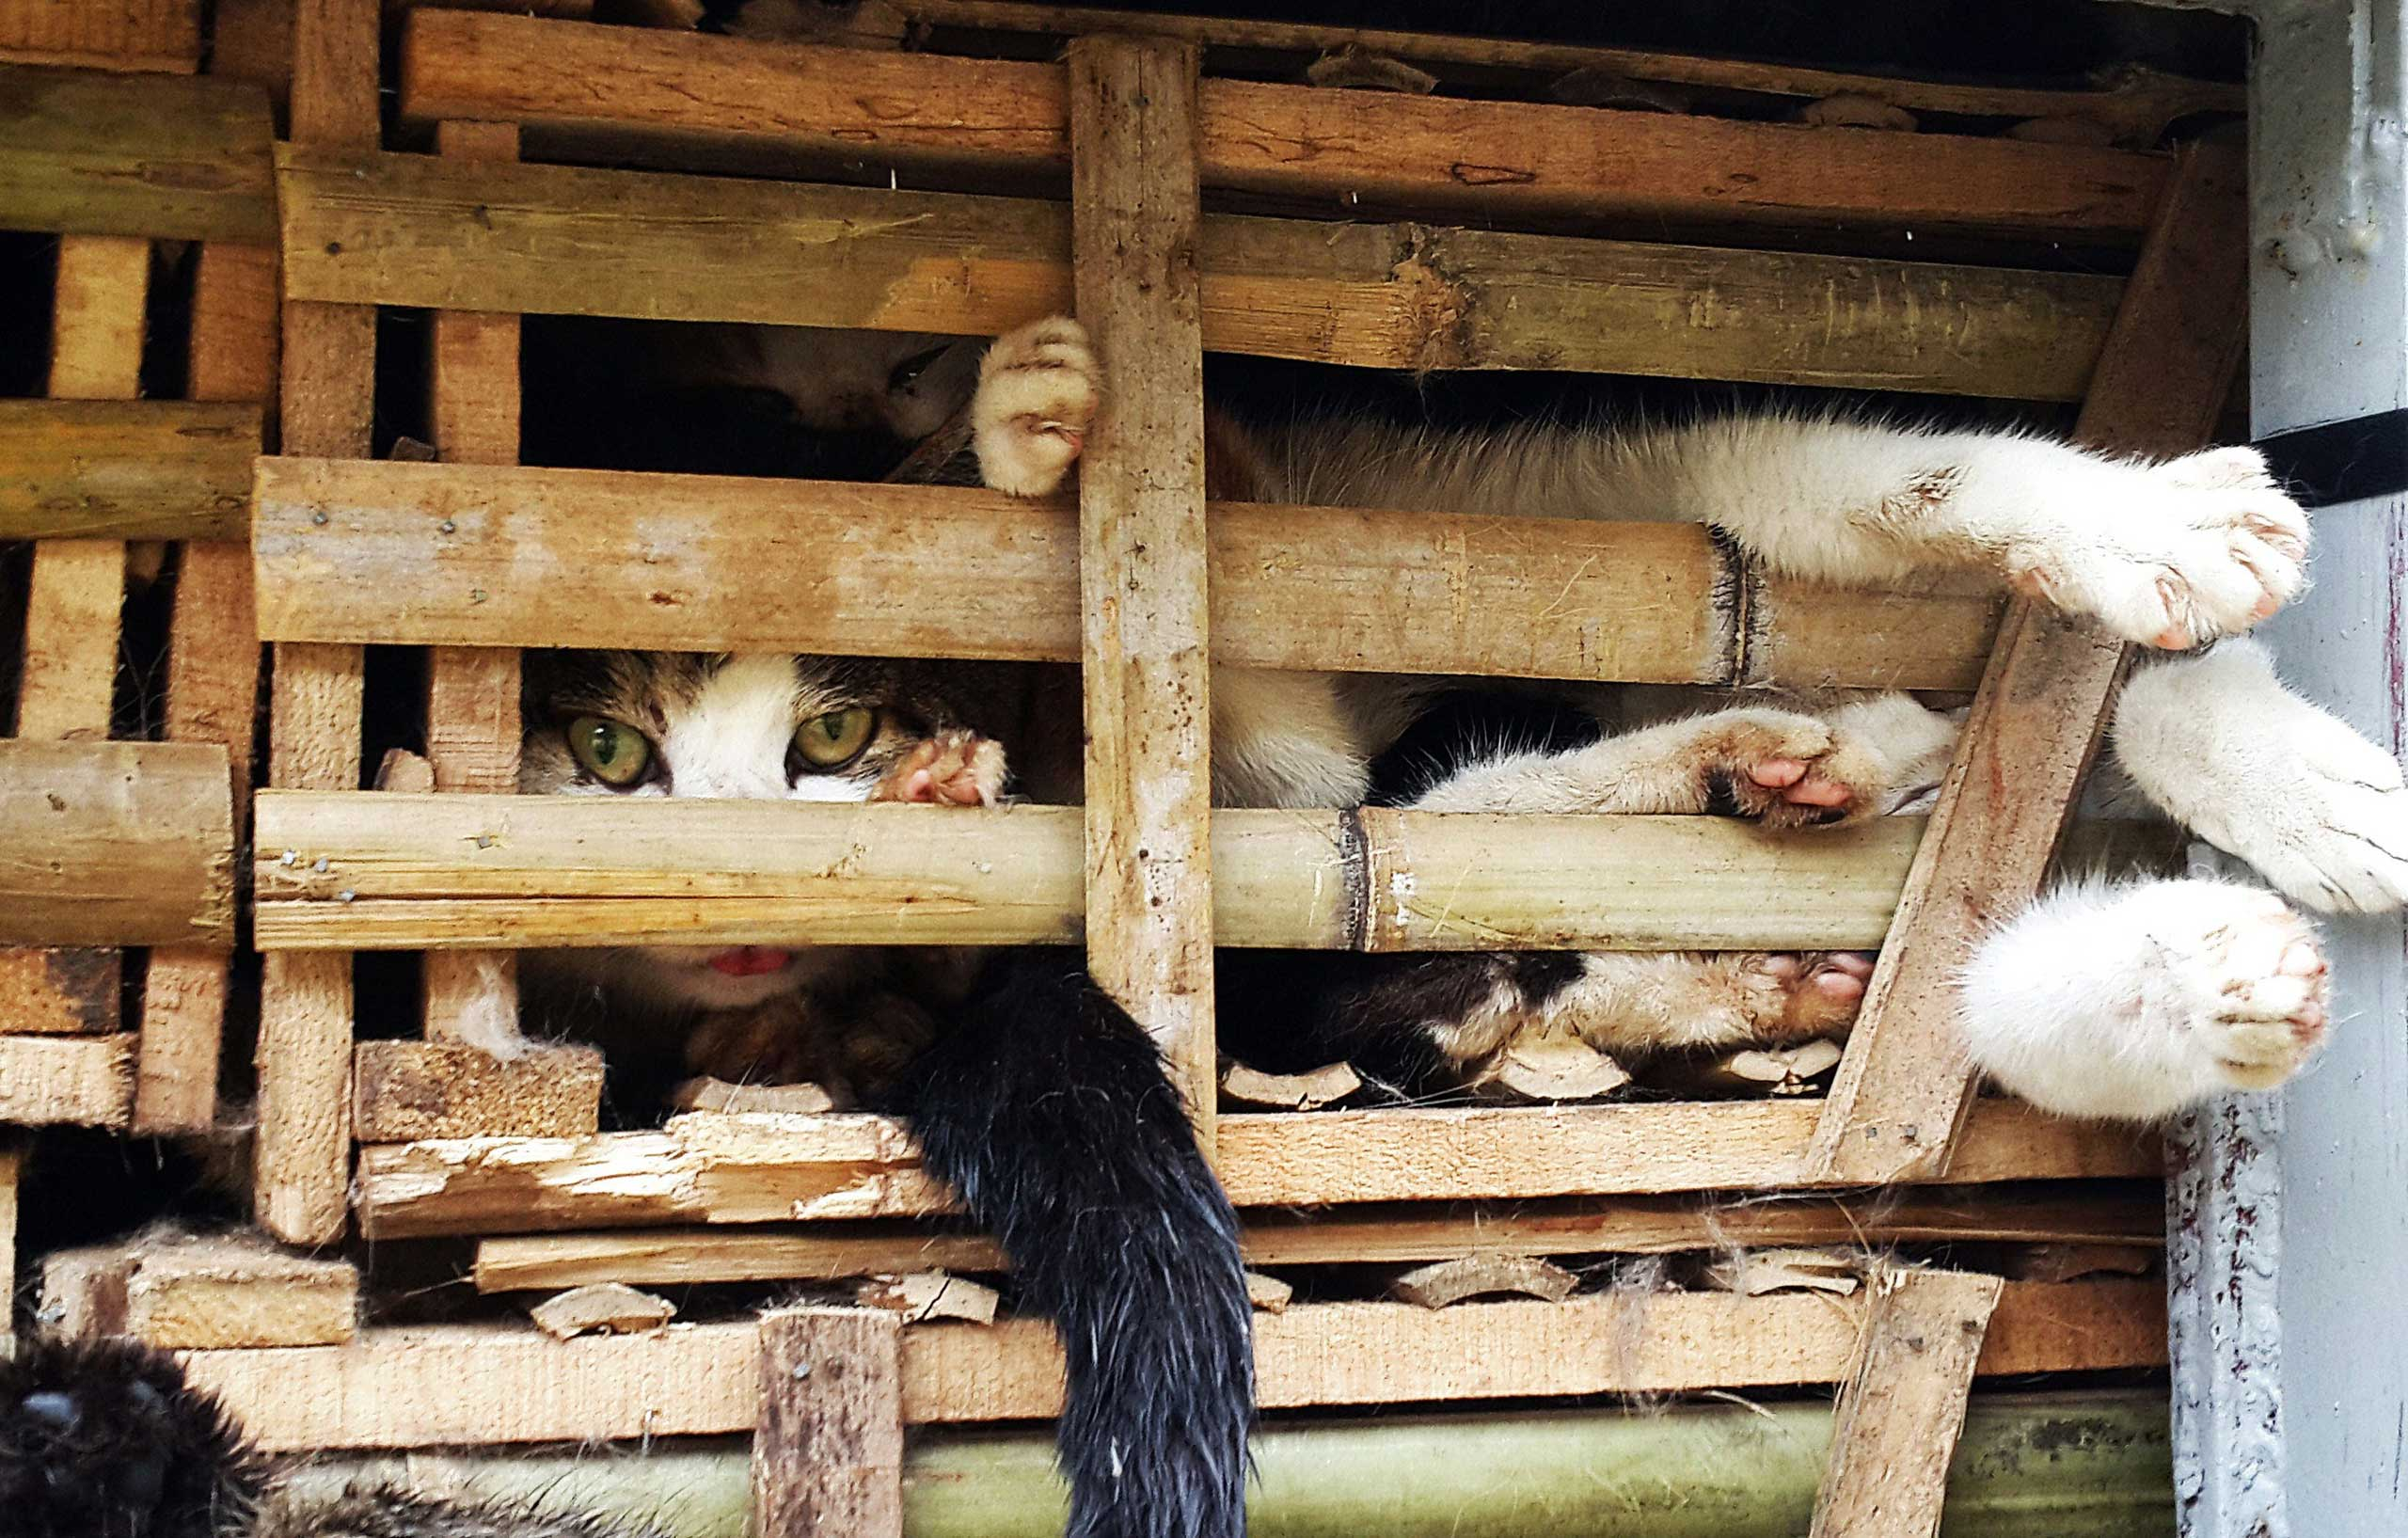 Jan. 27, 2015. Seized cages of live cats are transported in a truck in Hanoi. The cats are destined for consumption after being smuggled from China.